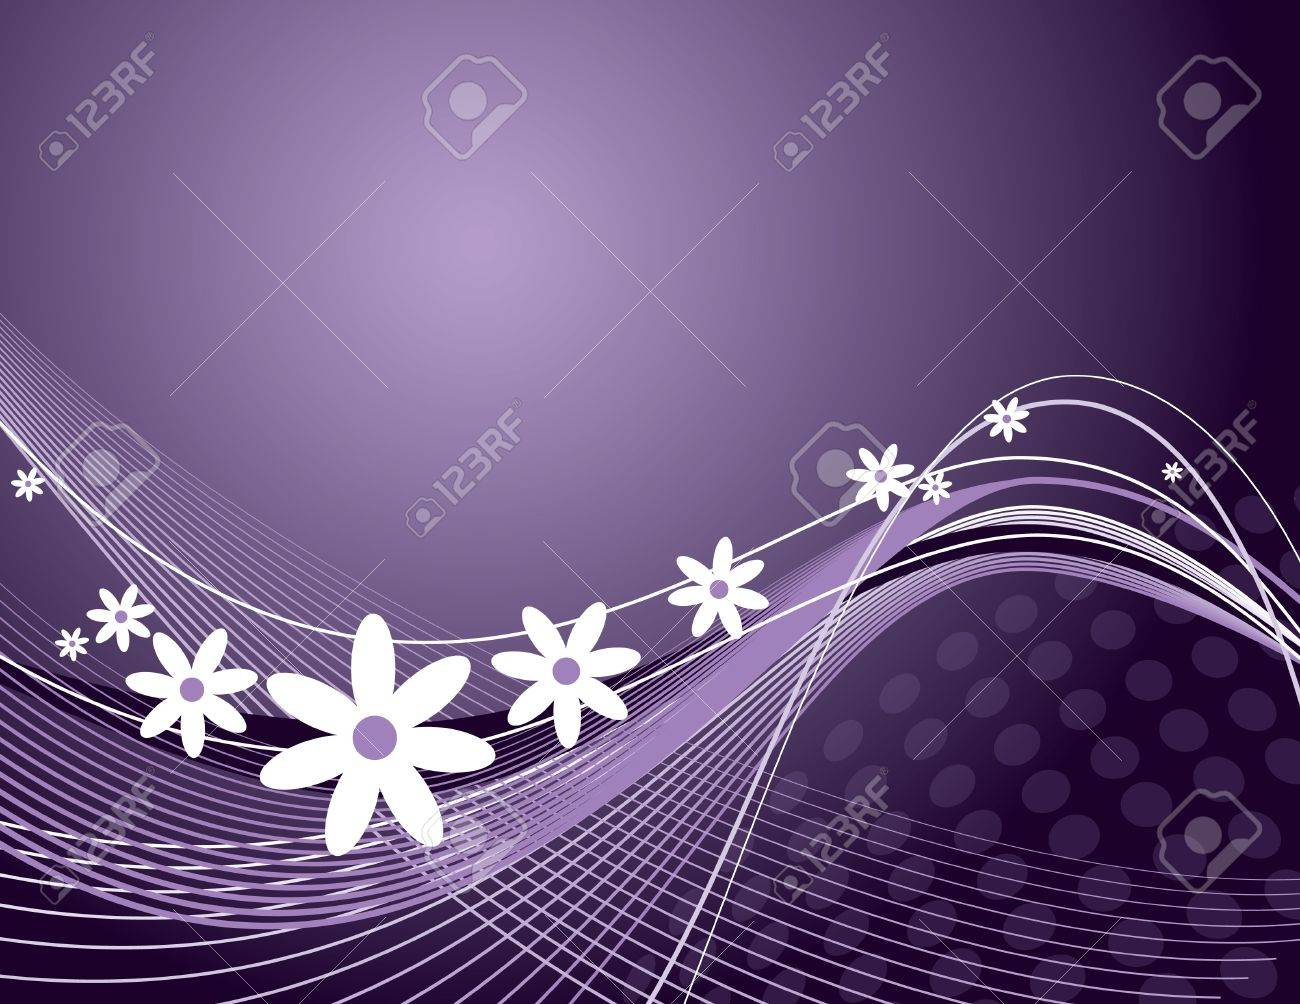 Floral Background  Vector Illustration Stock Vector - 13107106